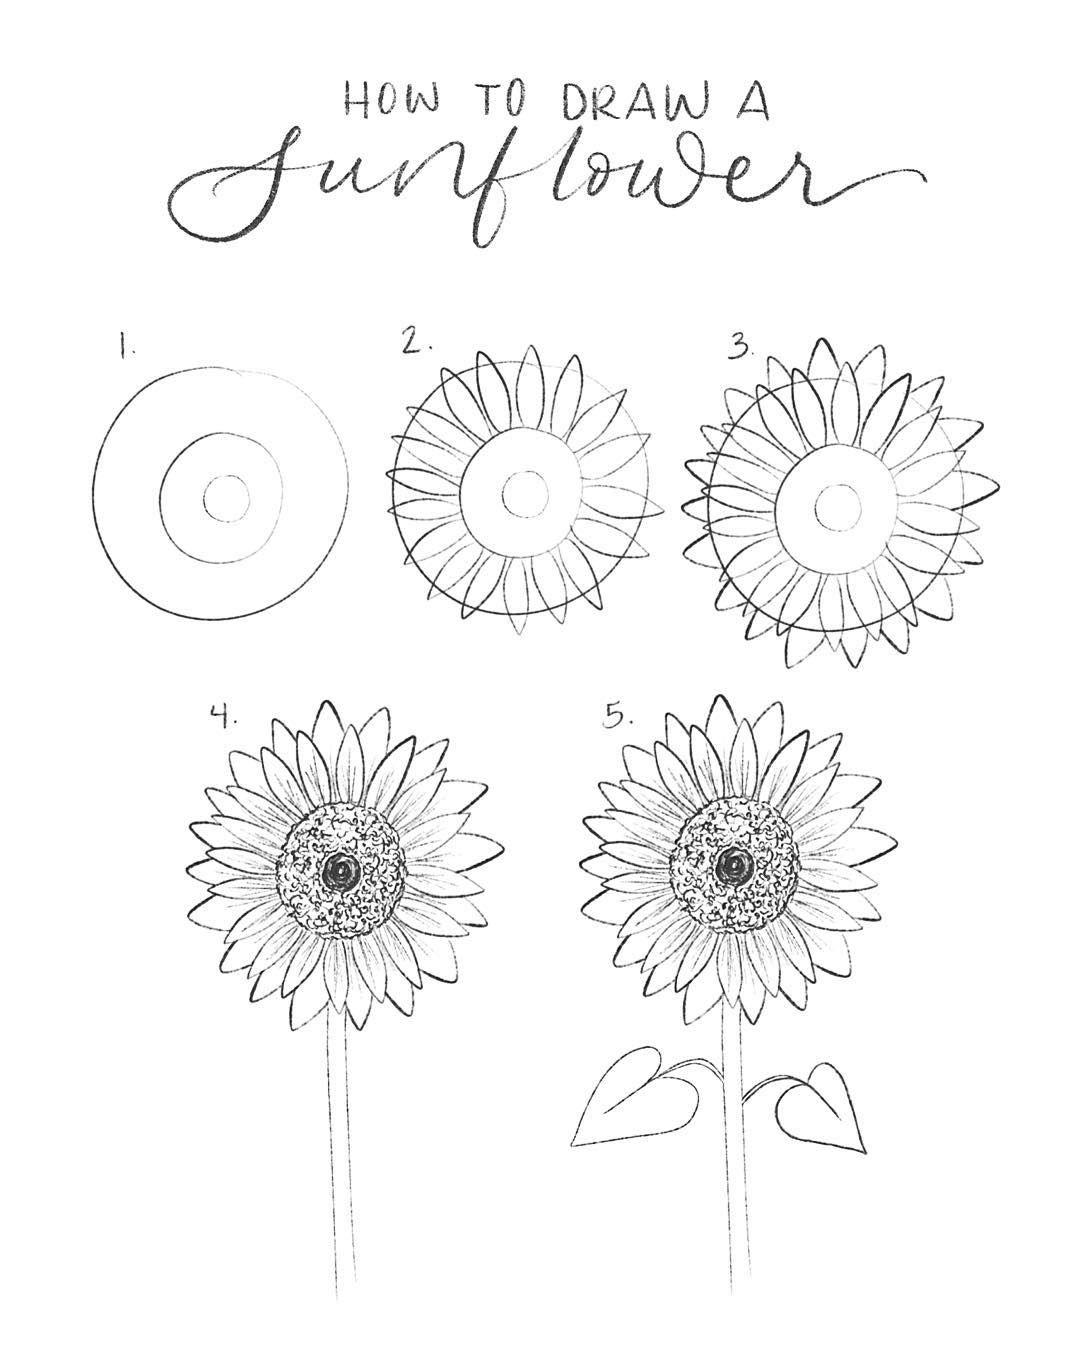 Kansas Mcgraw On Instagram How To Draw A Sunflower In 5 Easy Steps 1 Draw 3 Circles Startin In 2020 Flower Drawing Tutorials Sunflower Drawing Easy Flower Drawings